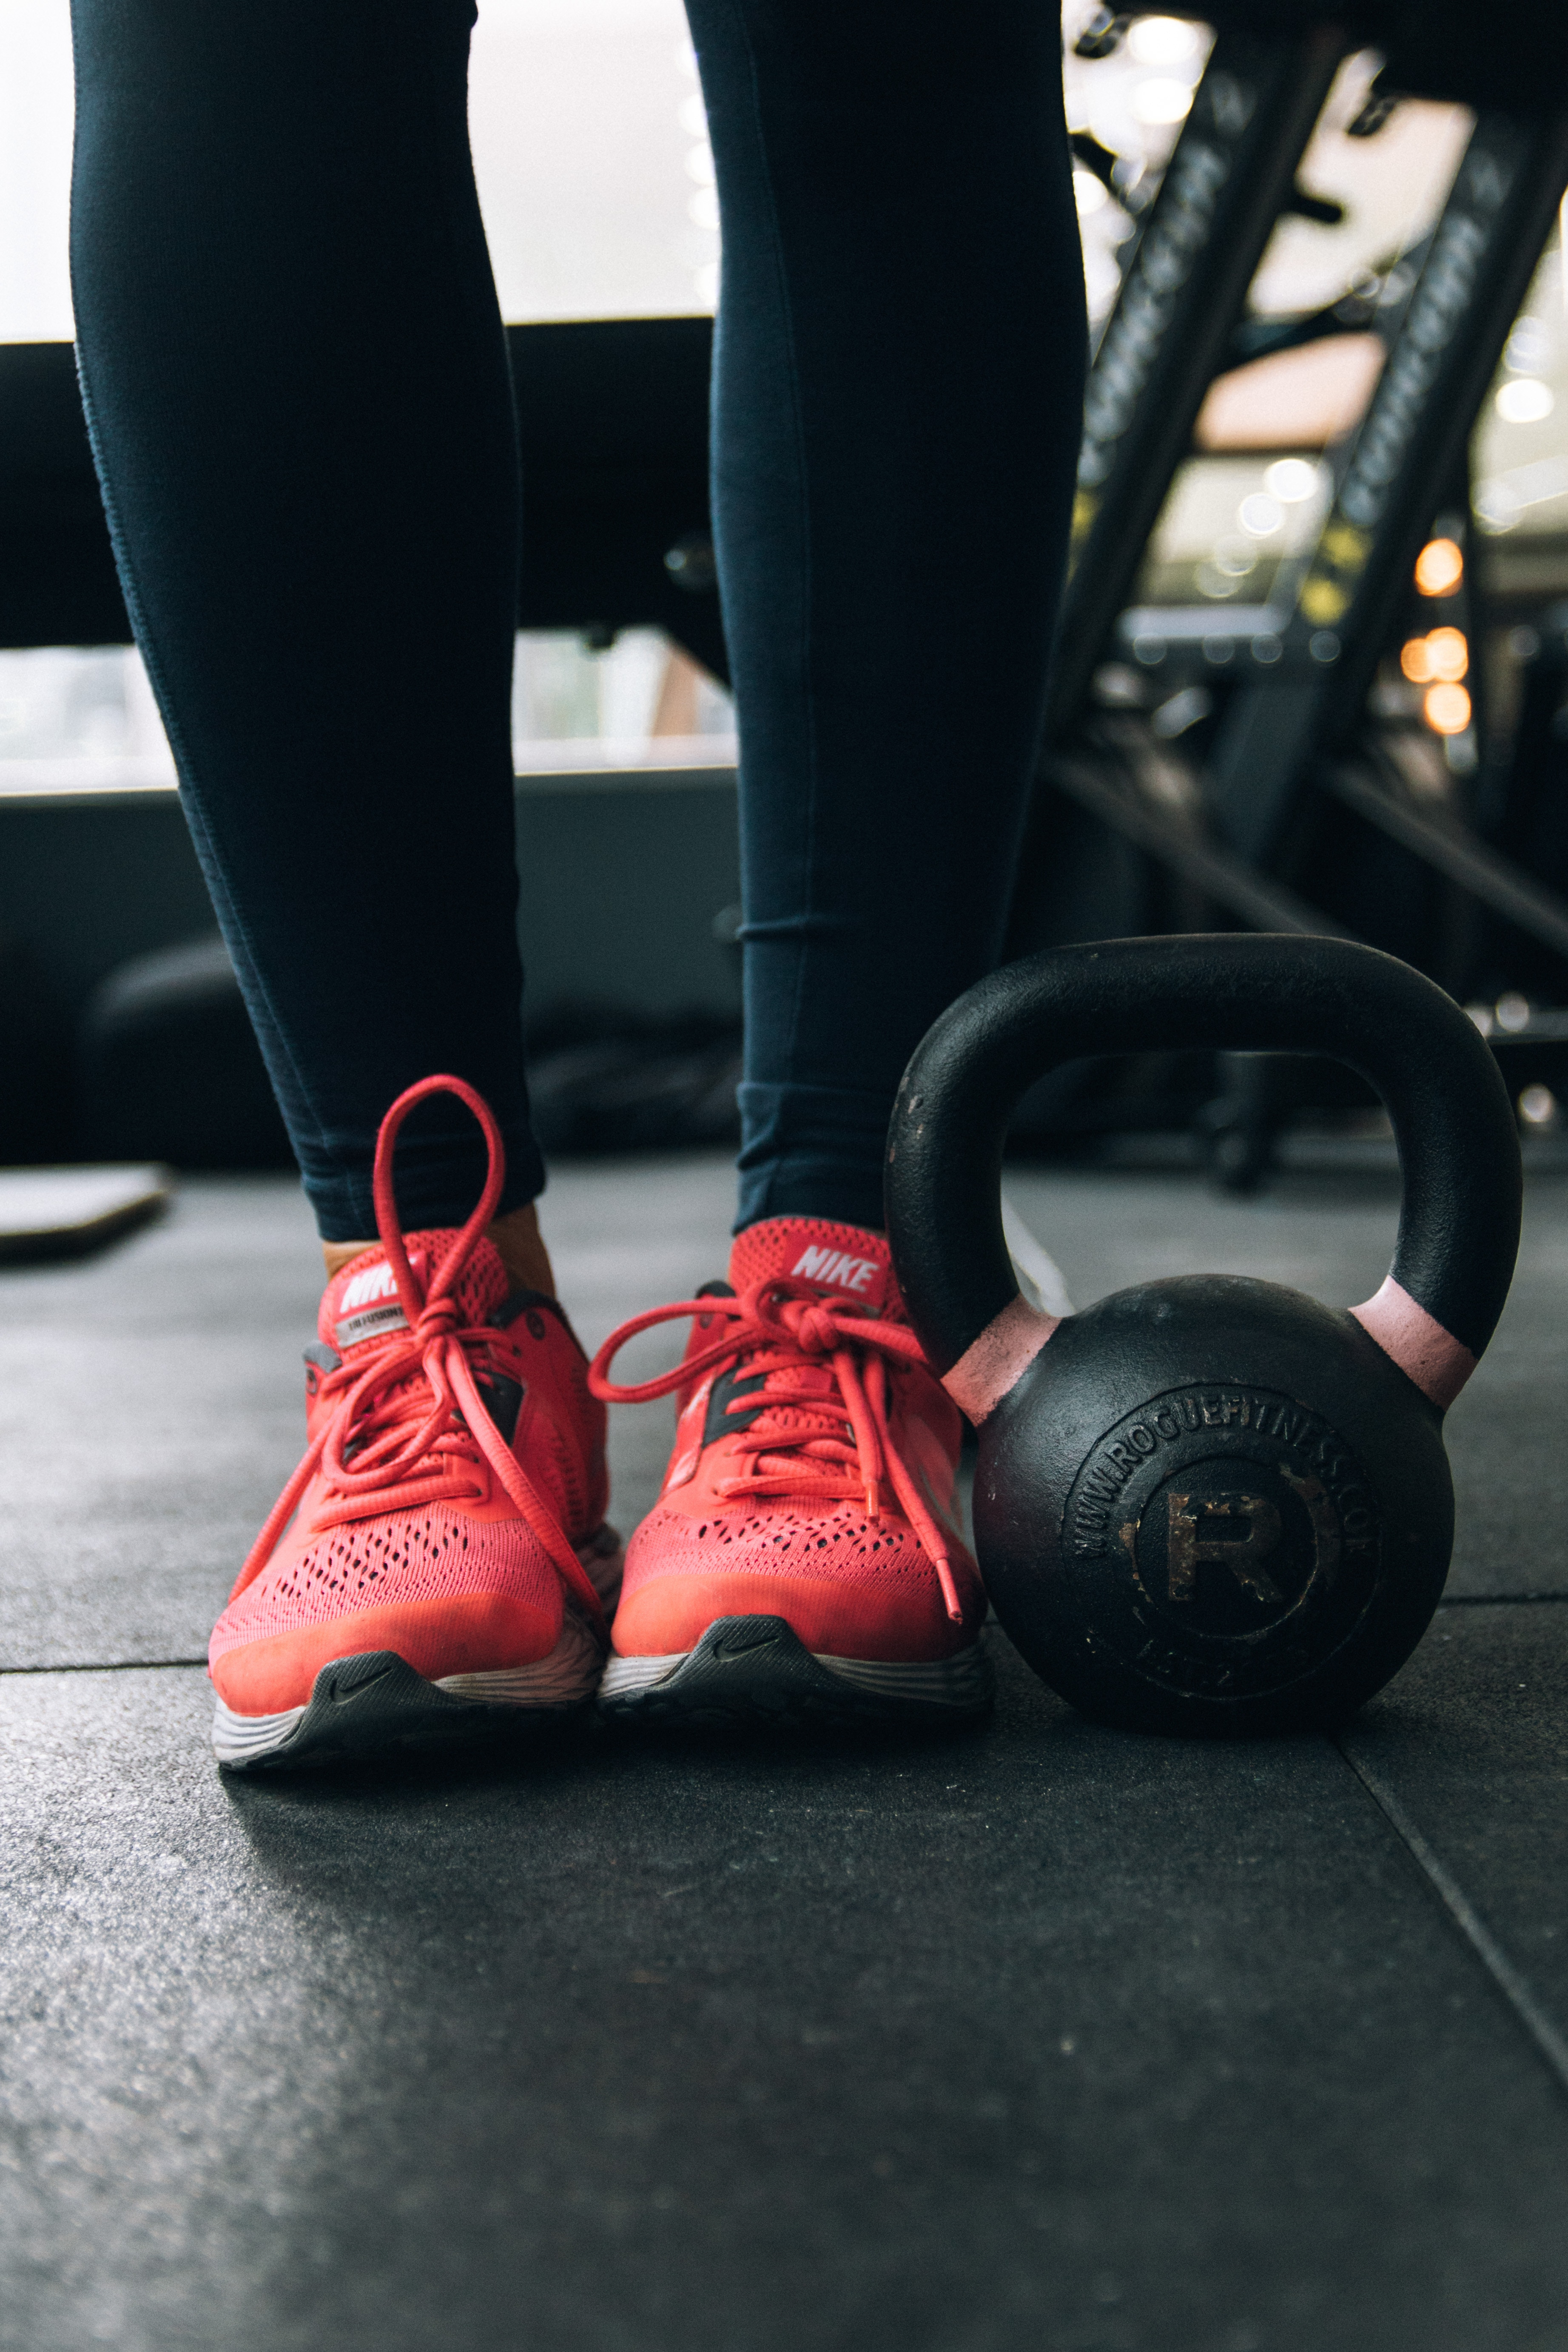 Classes such as spin, kettlebells and TRx are are all great for full body conditioning